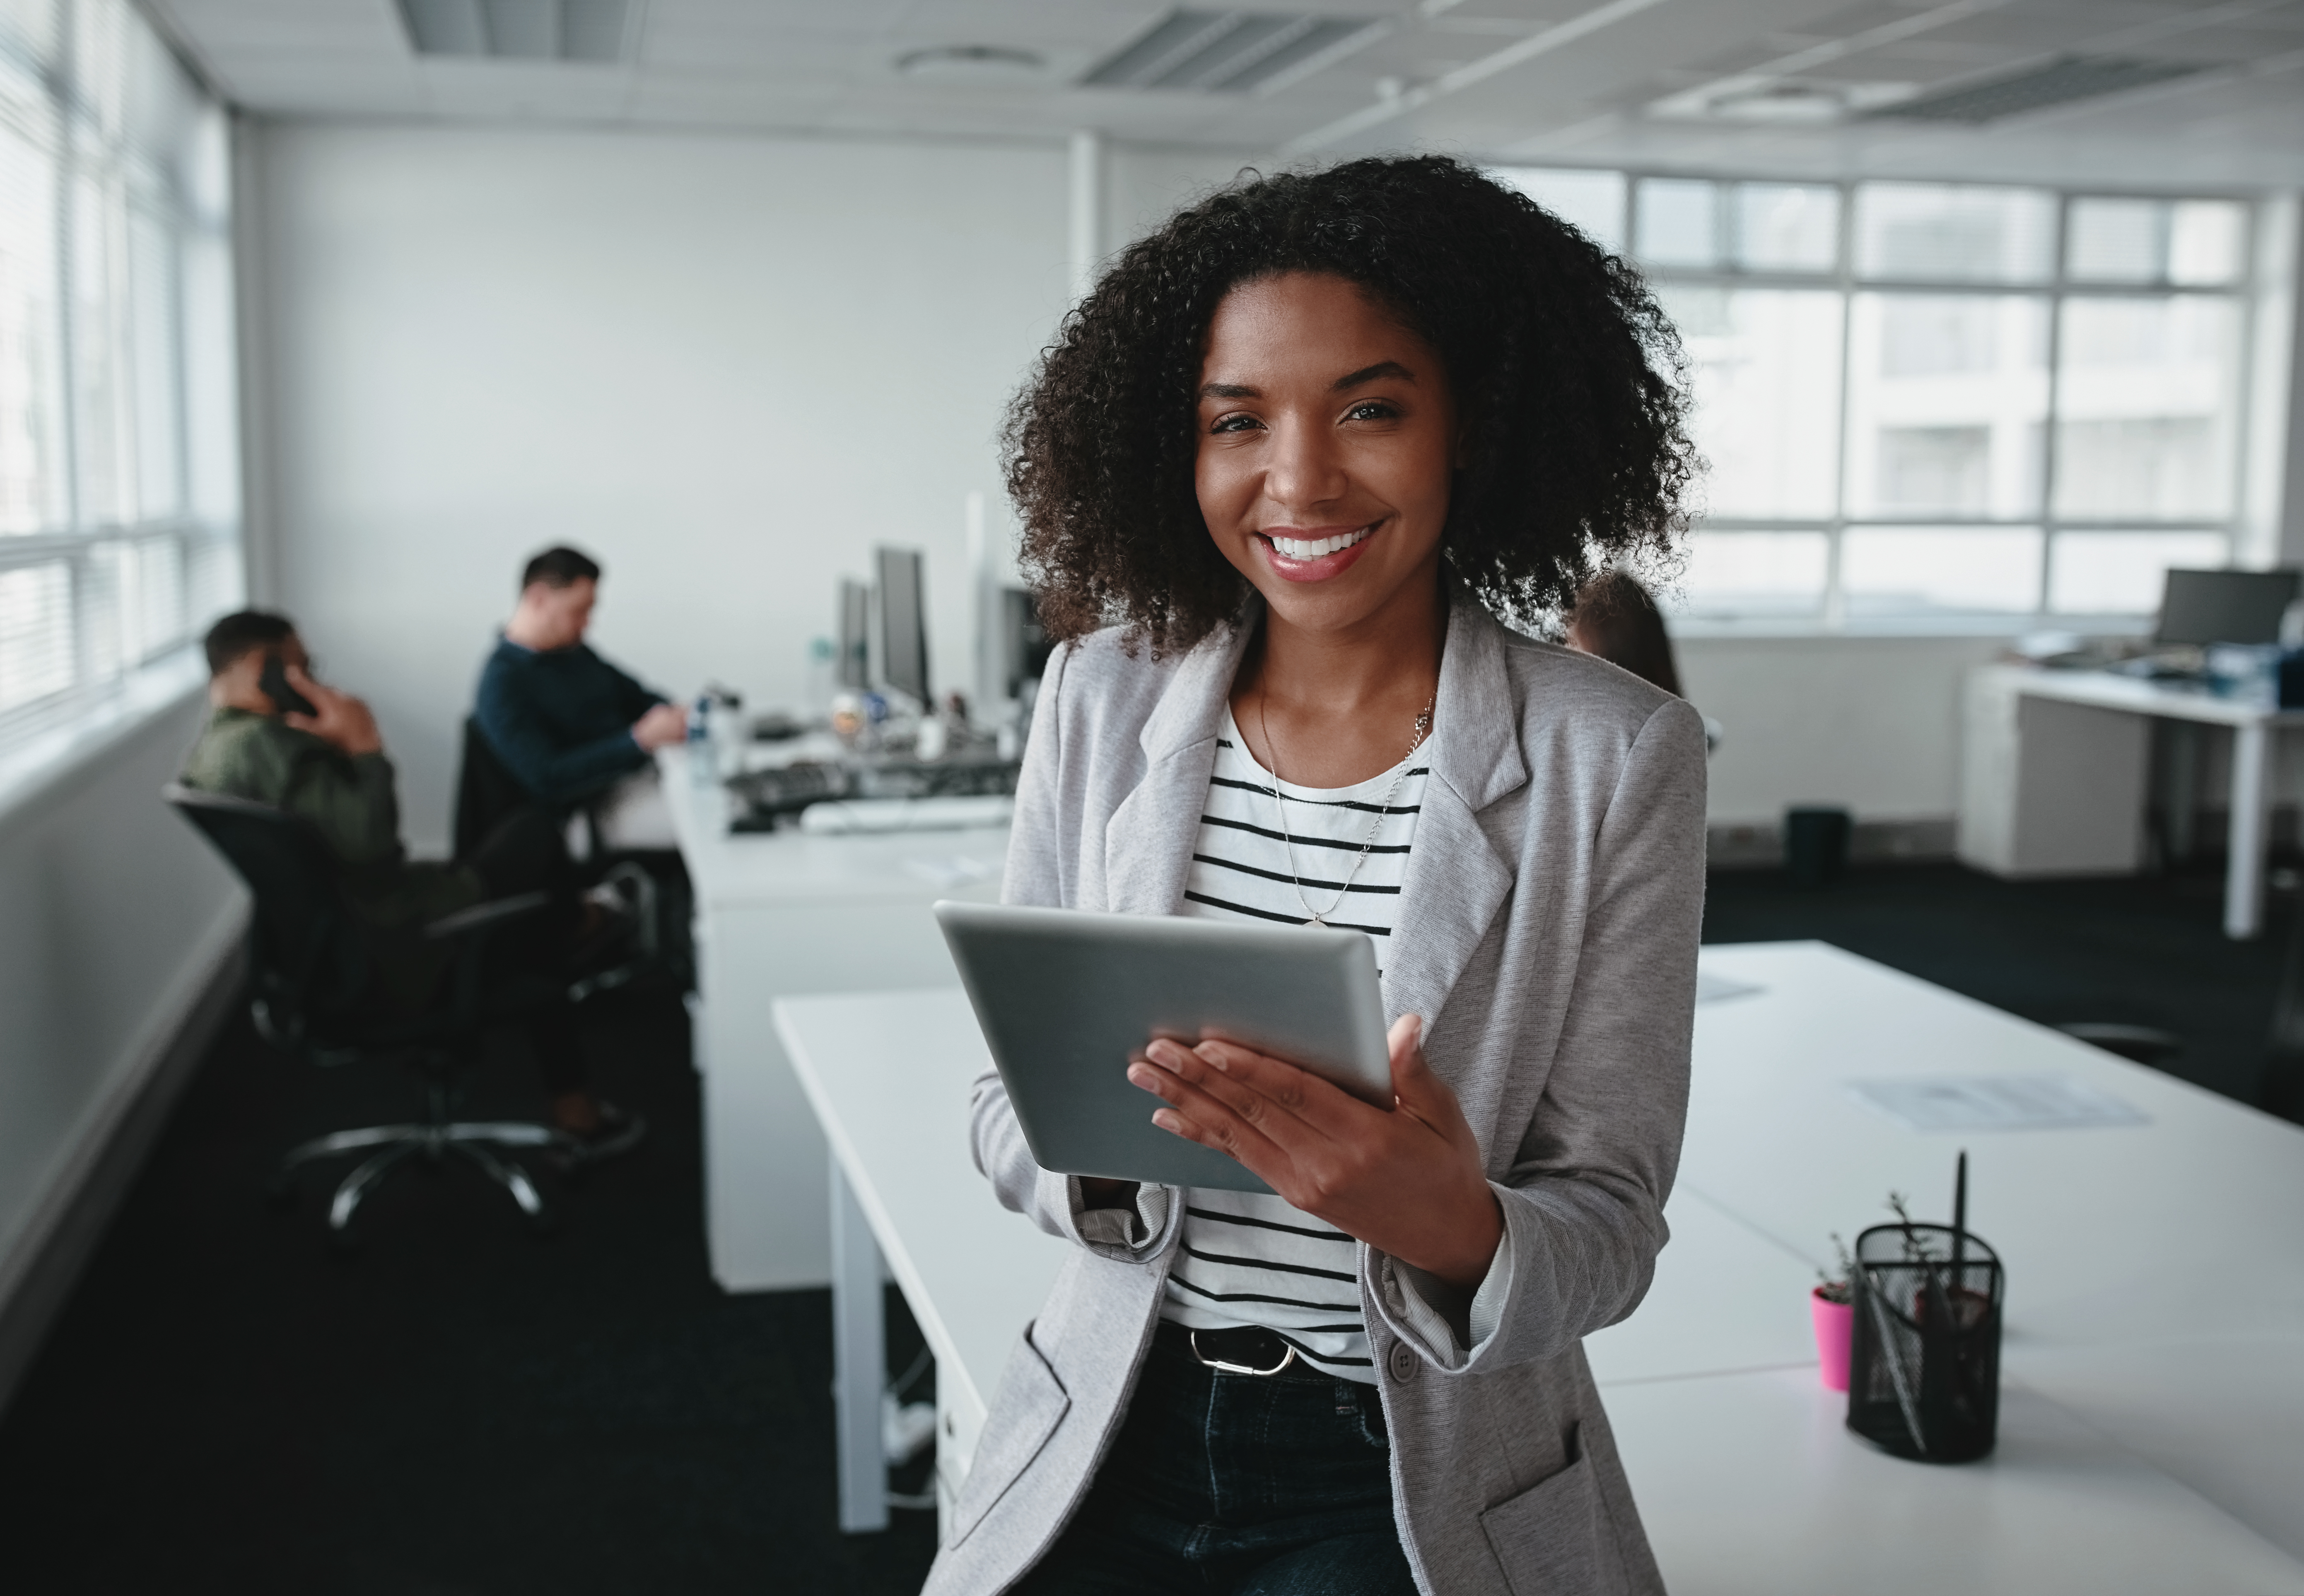 Human resources executive holding a tablet